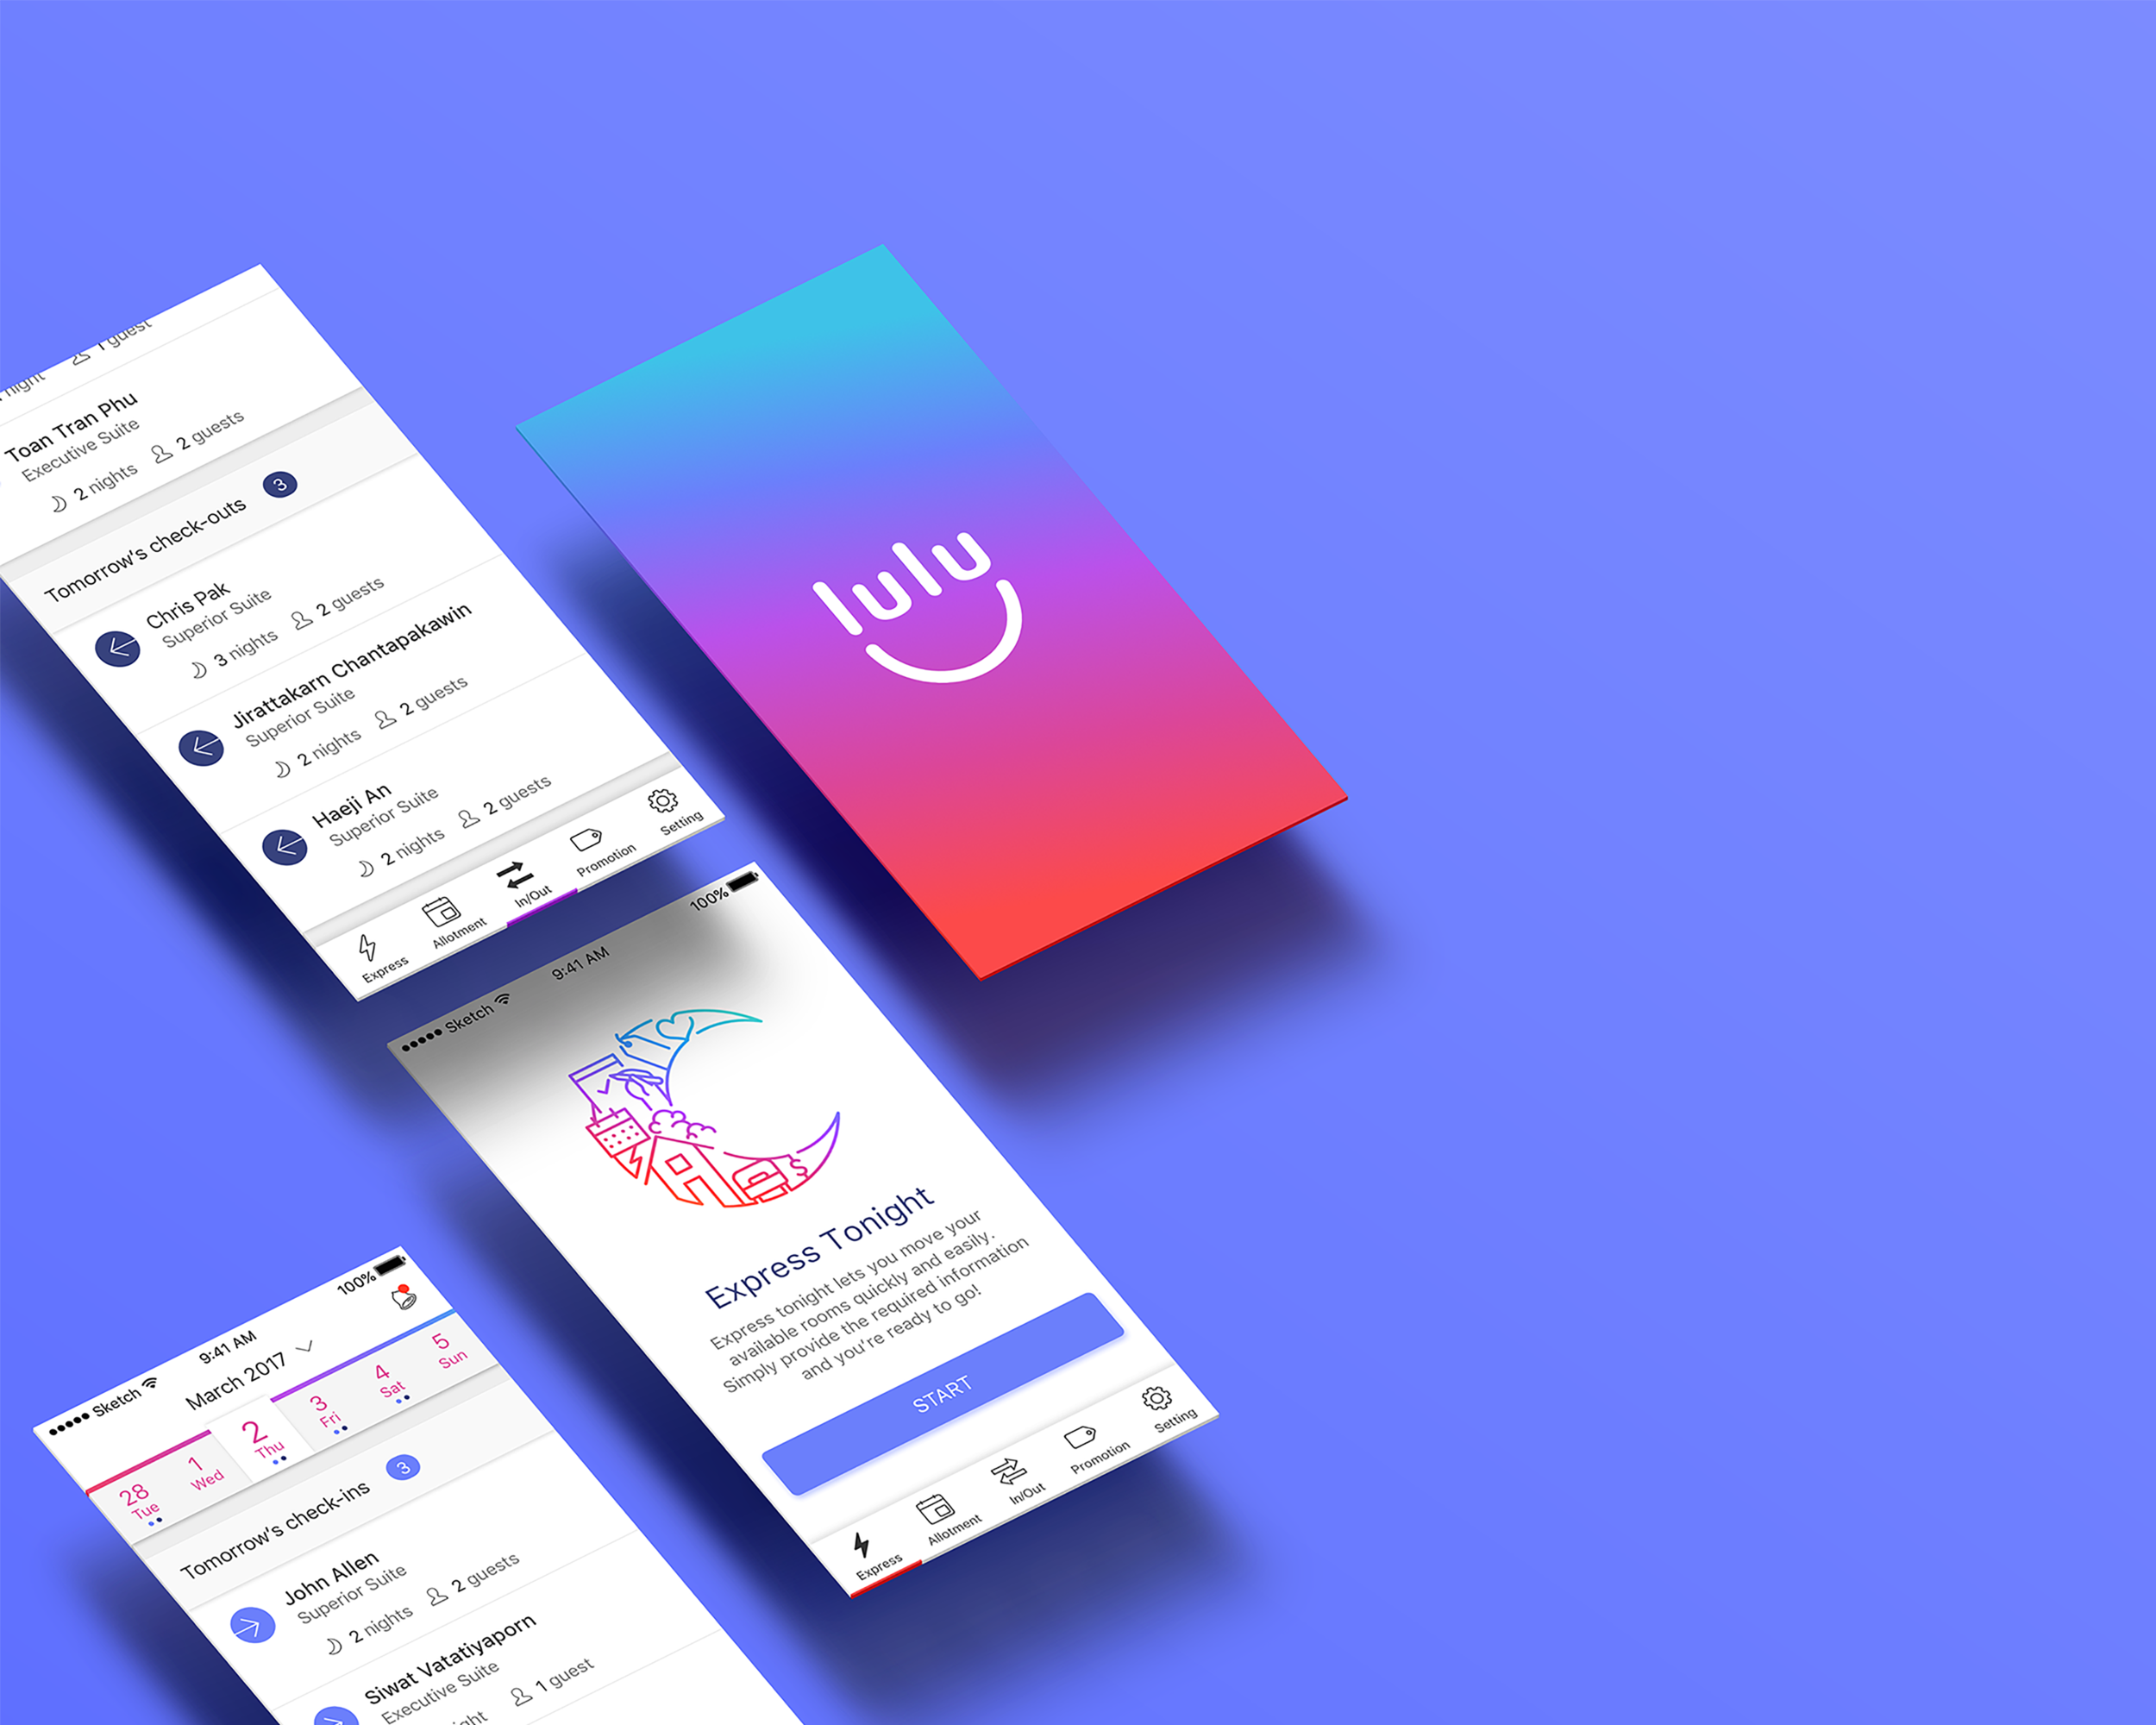 Lulu's screens depicting product features and capacities.